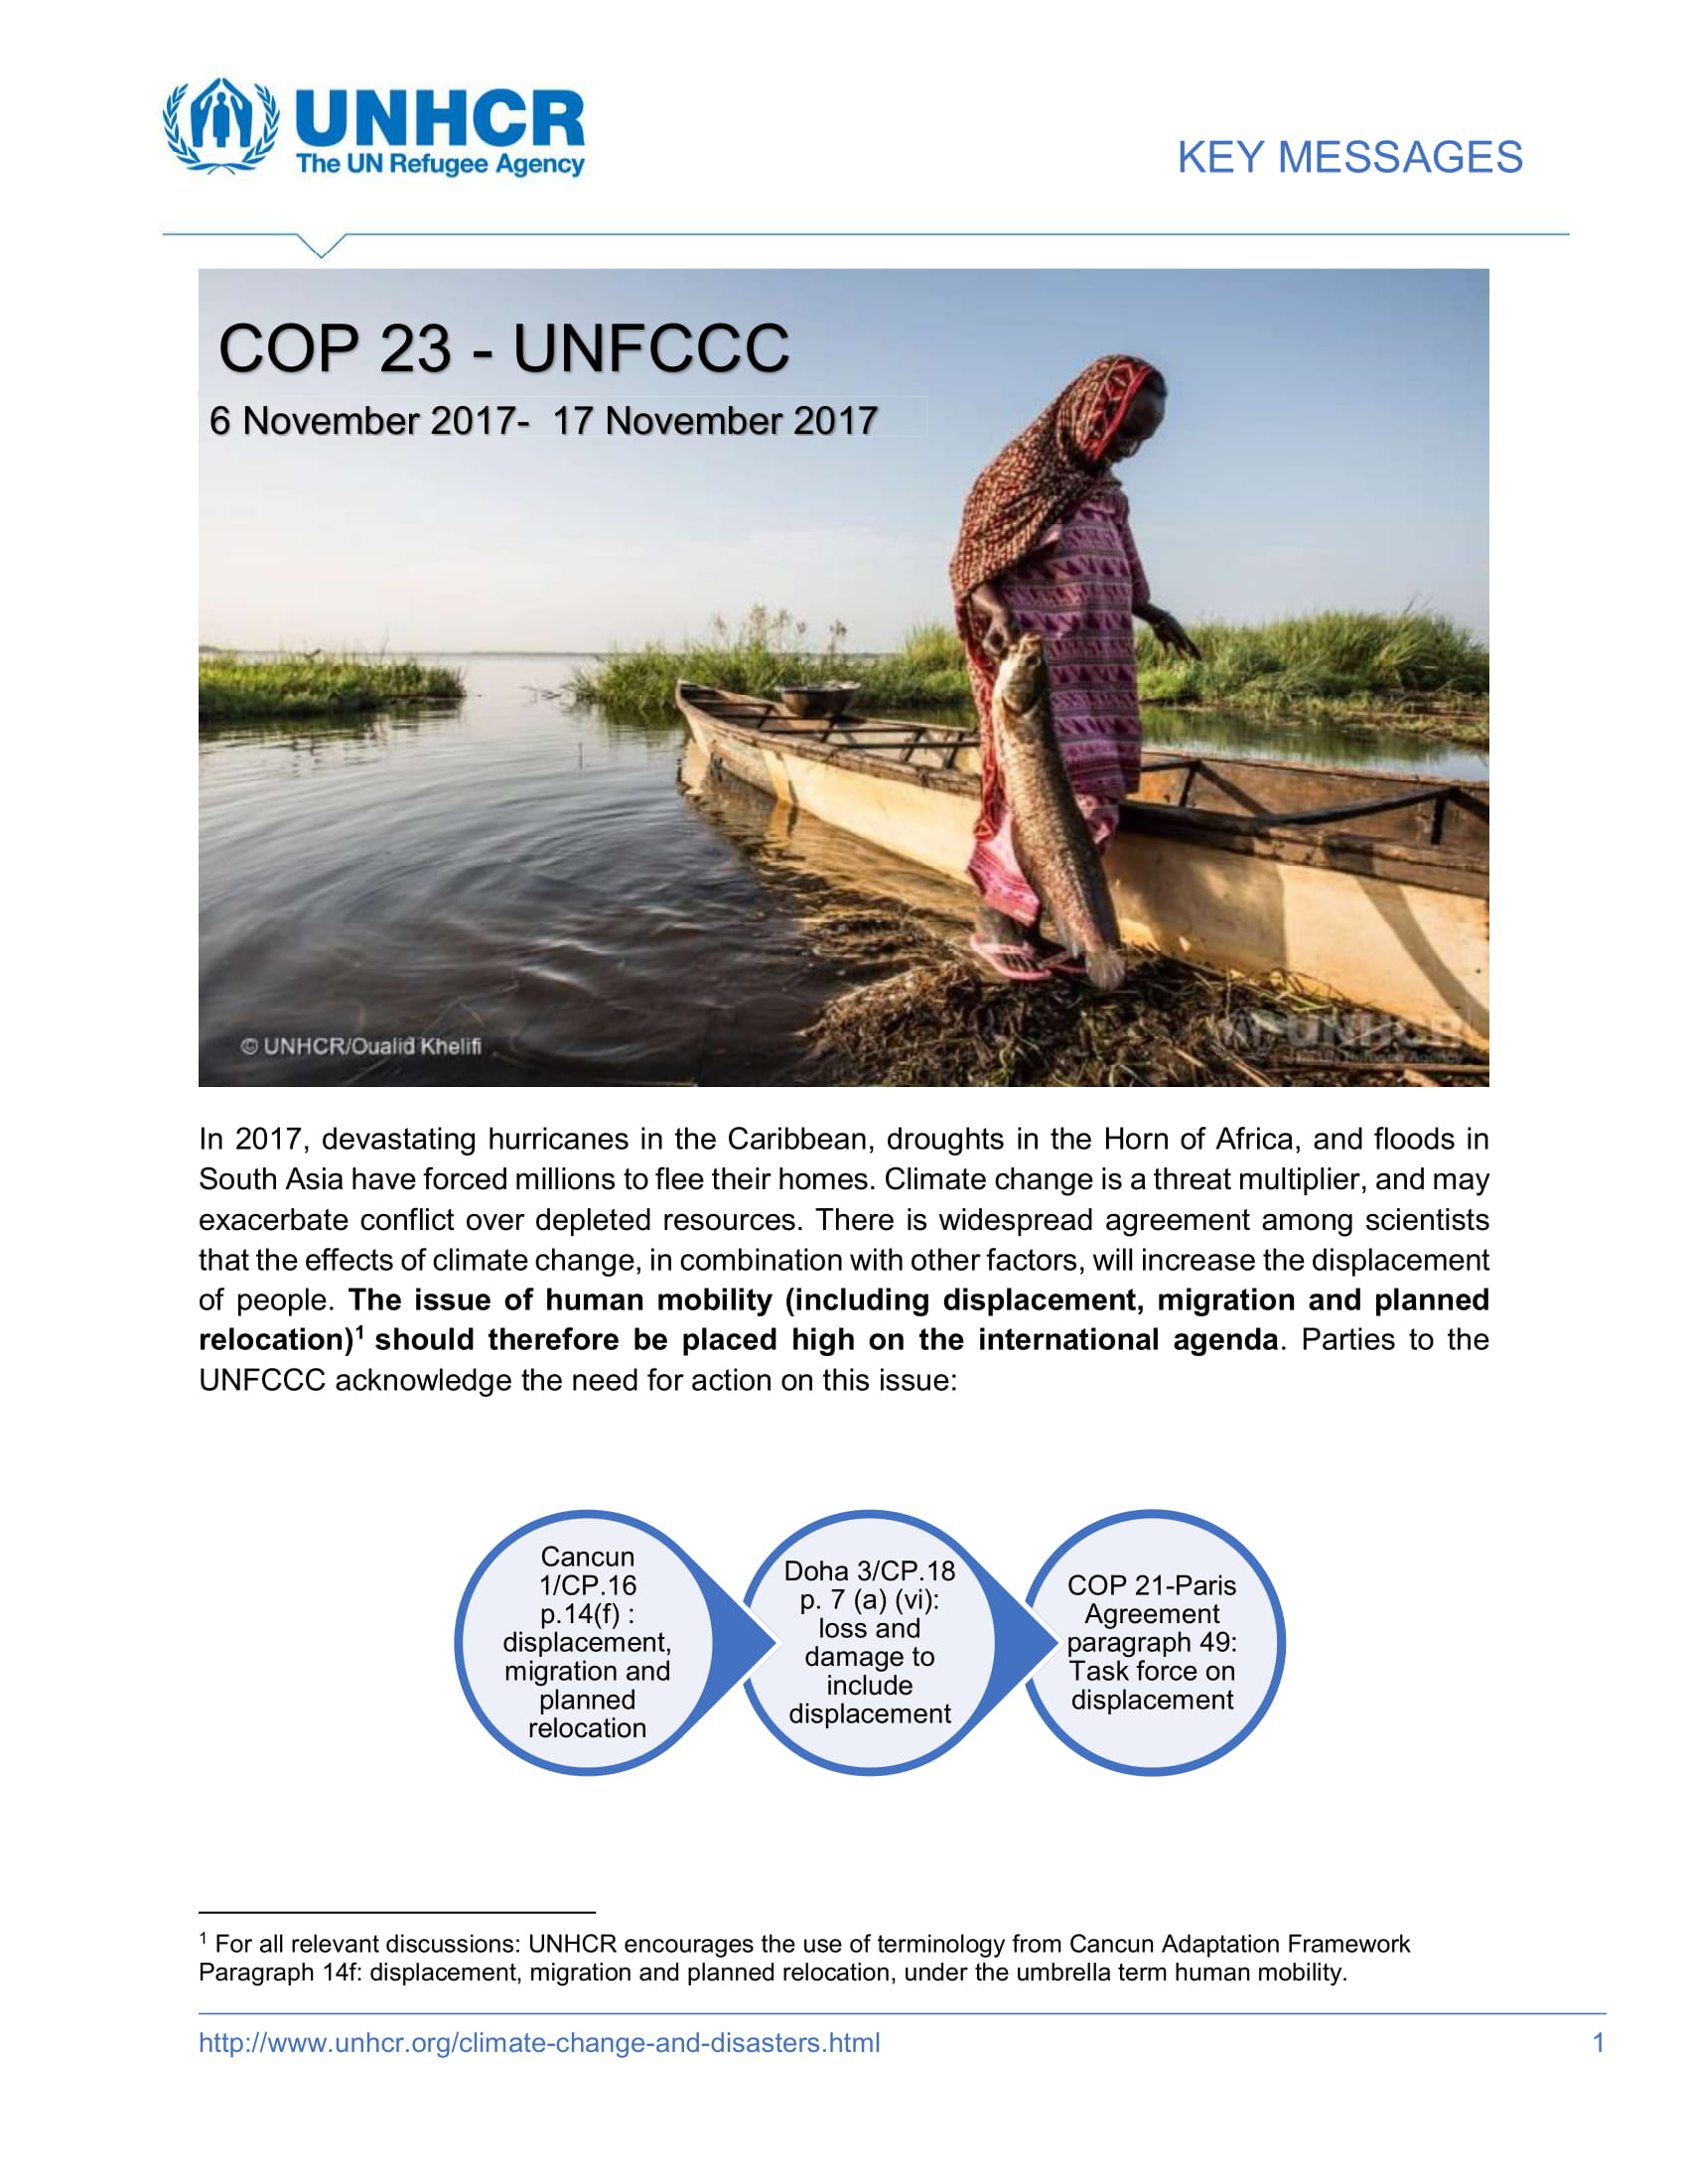 UNHCR Key Messages For Cop 23